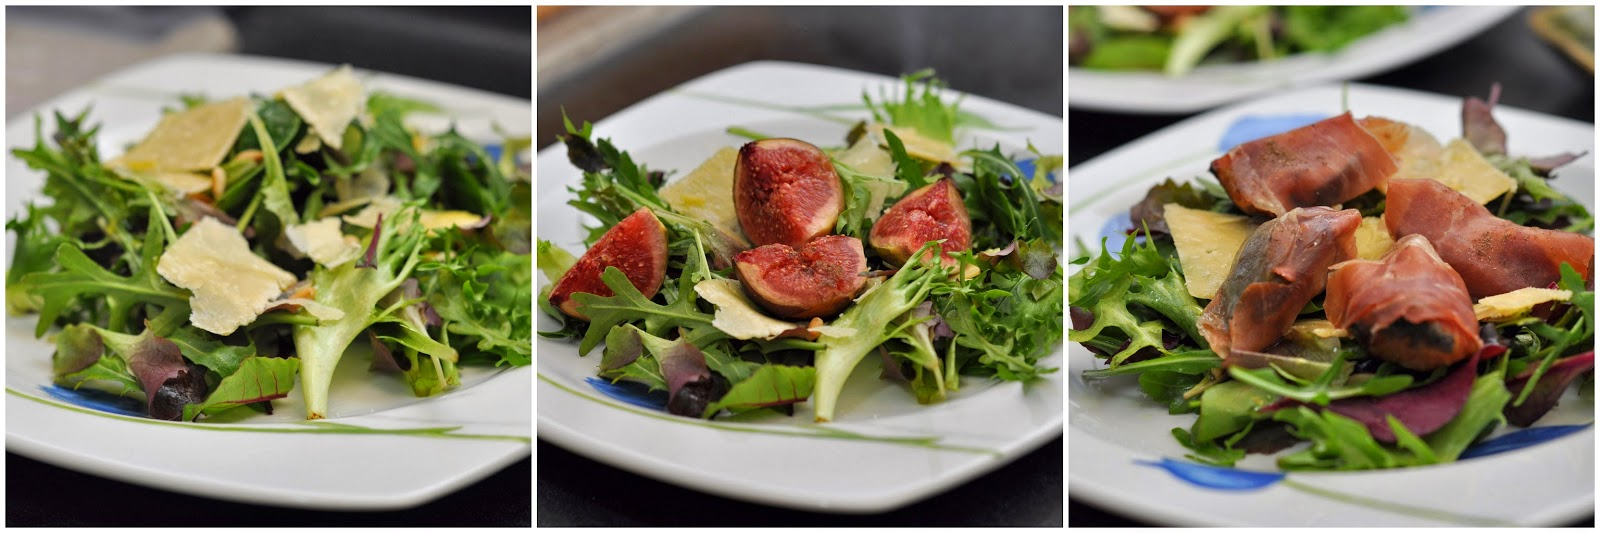 Roasted Figs Salad with (or without) Parma Ham | Jyotsna's ...